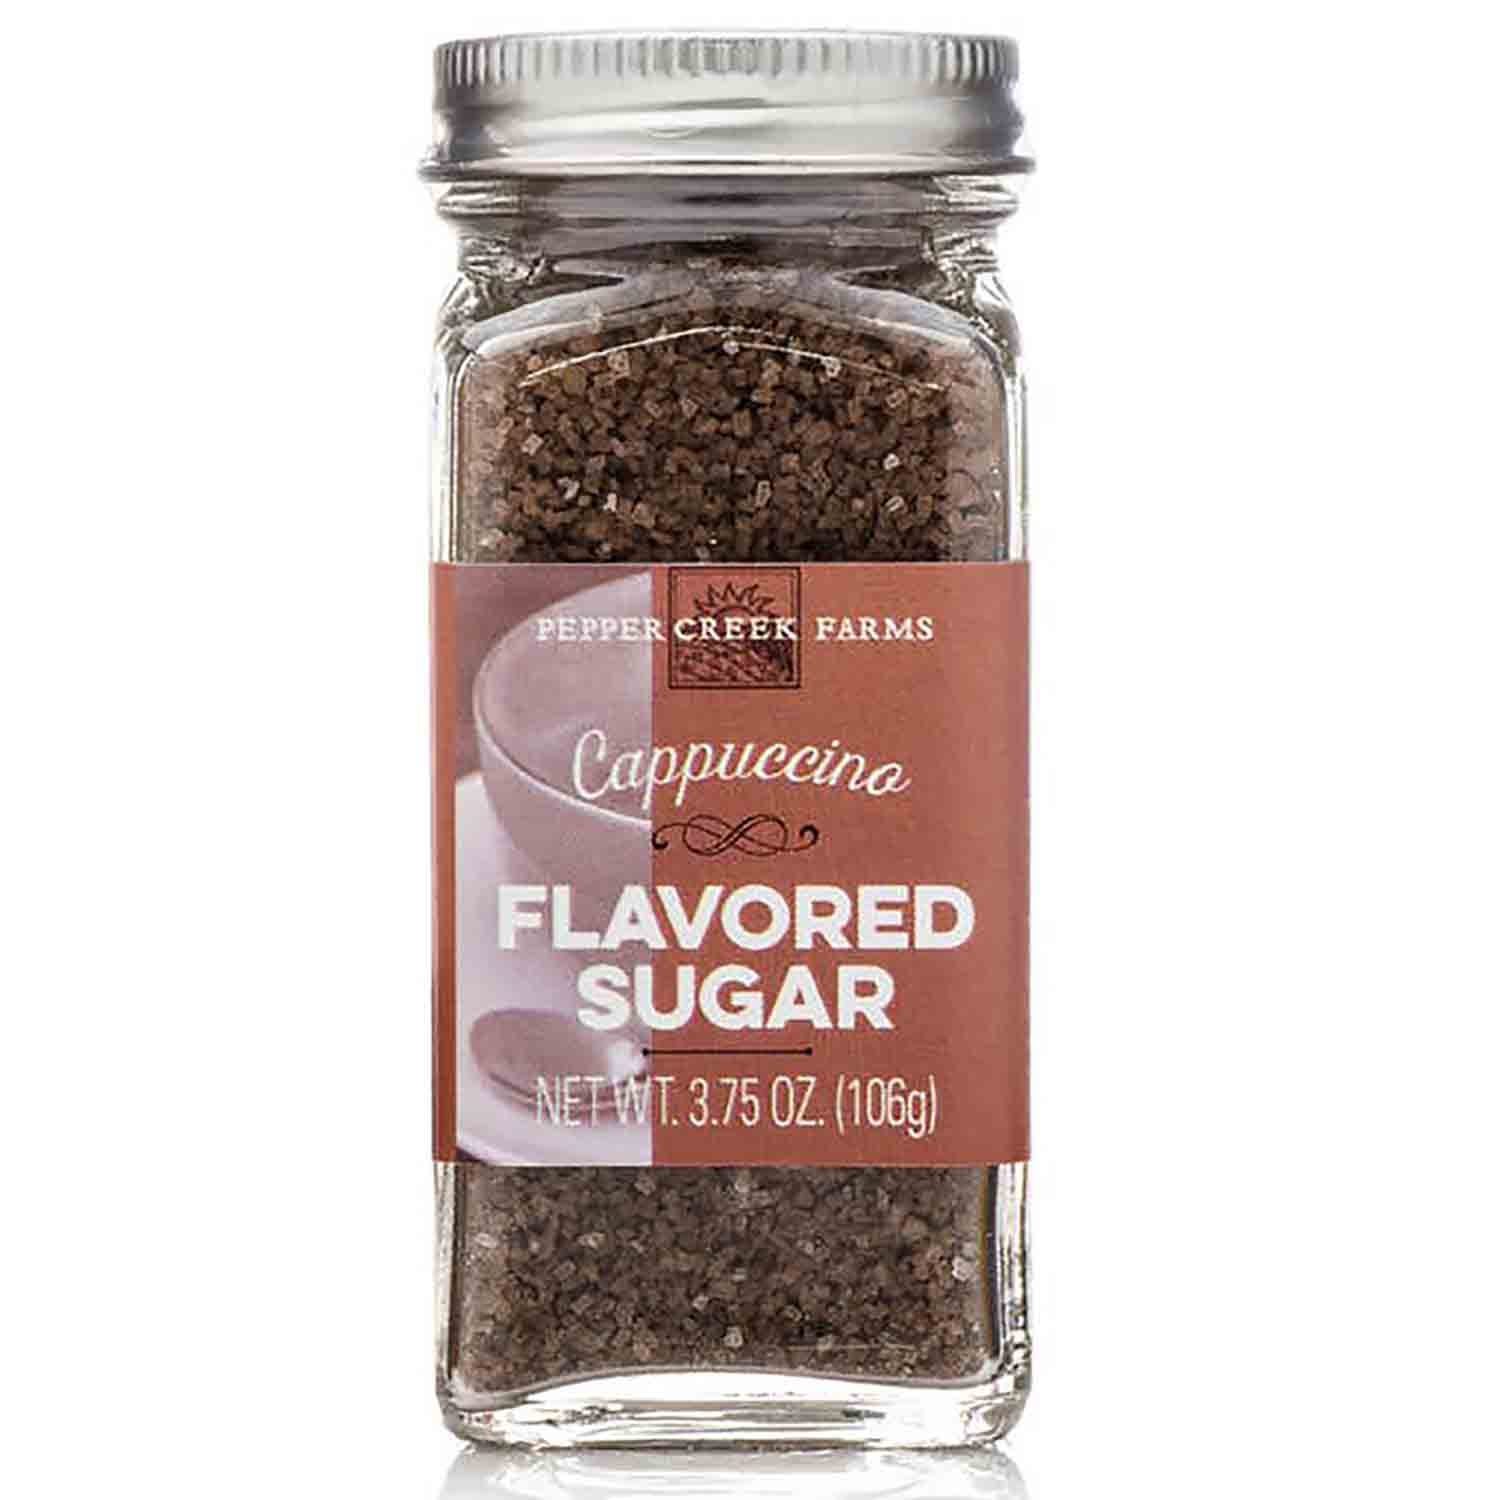 Cappuccino Flavored Sugar